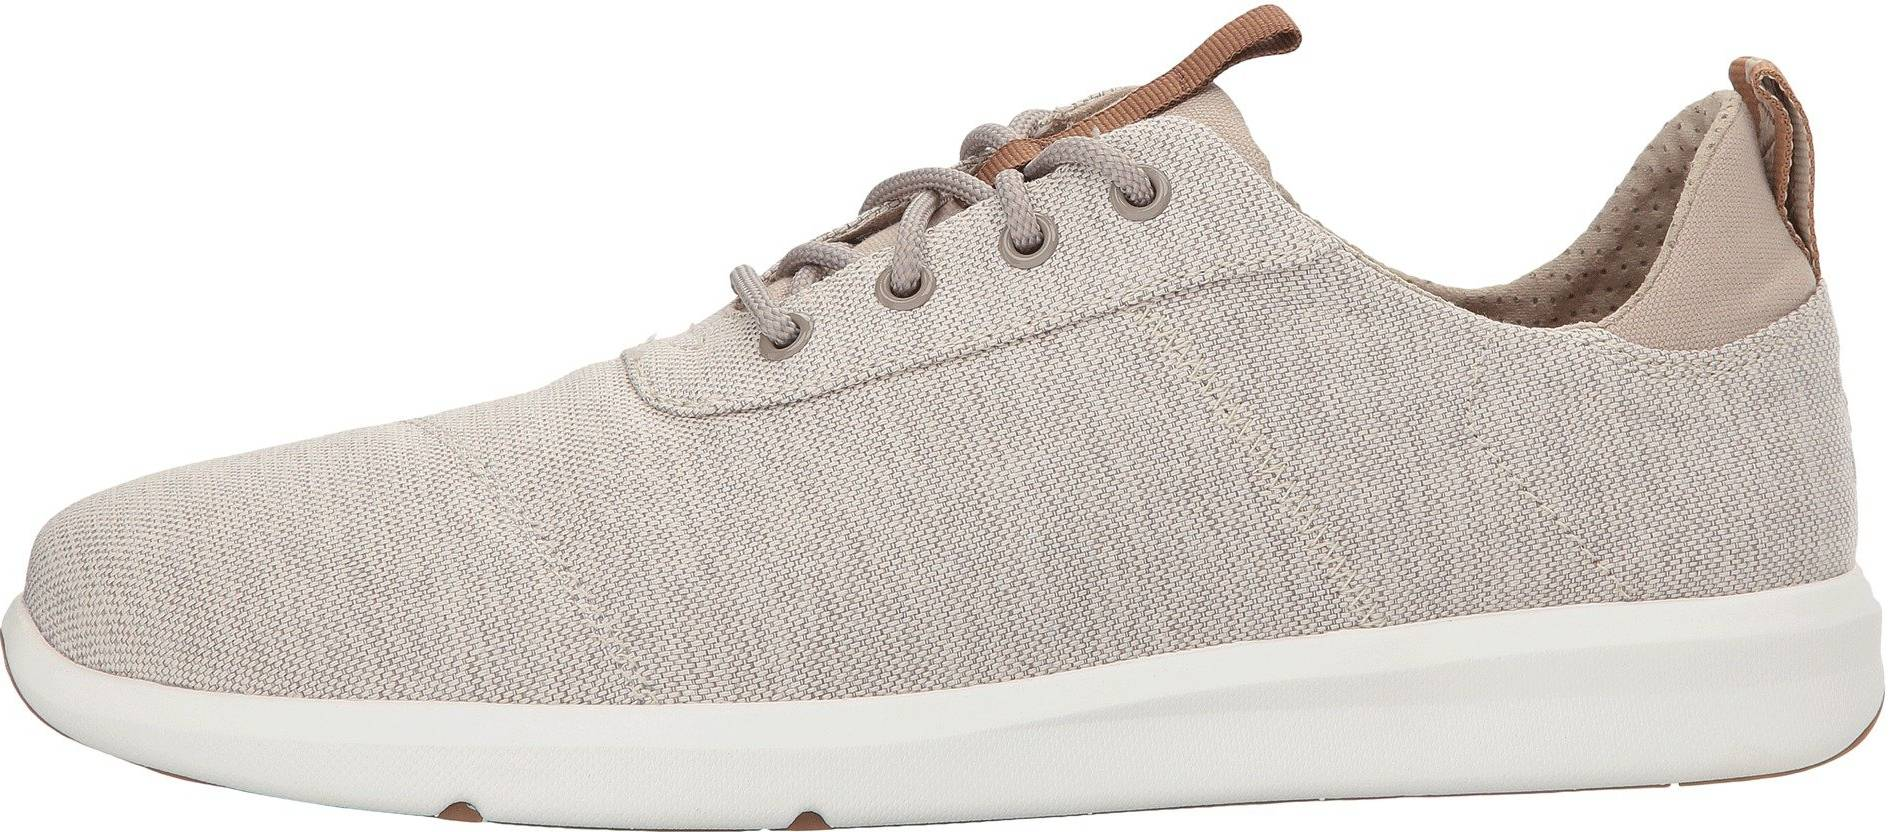 Only $19 + Review of TOMS Cabrillo